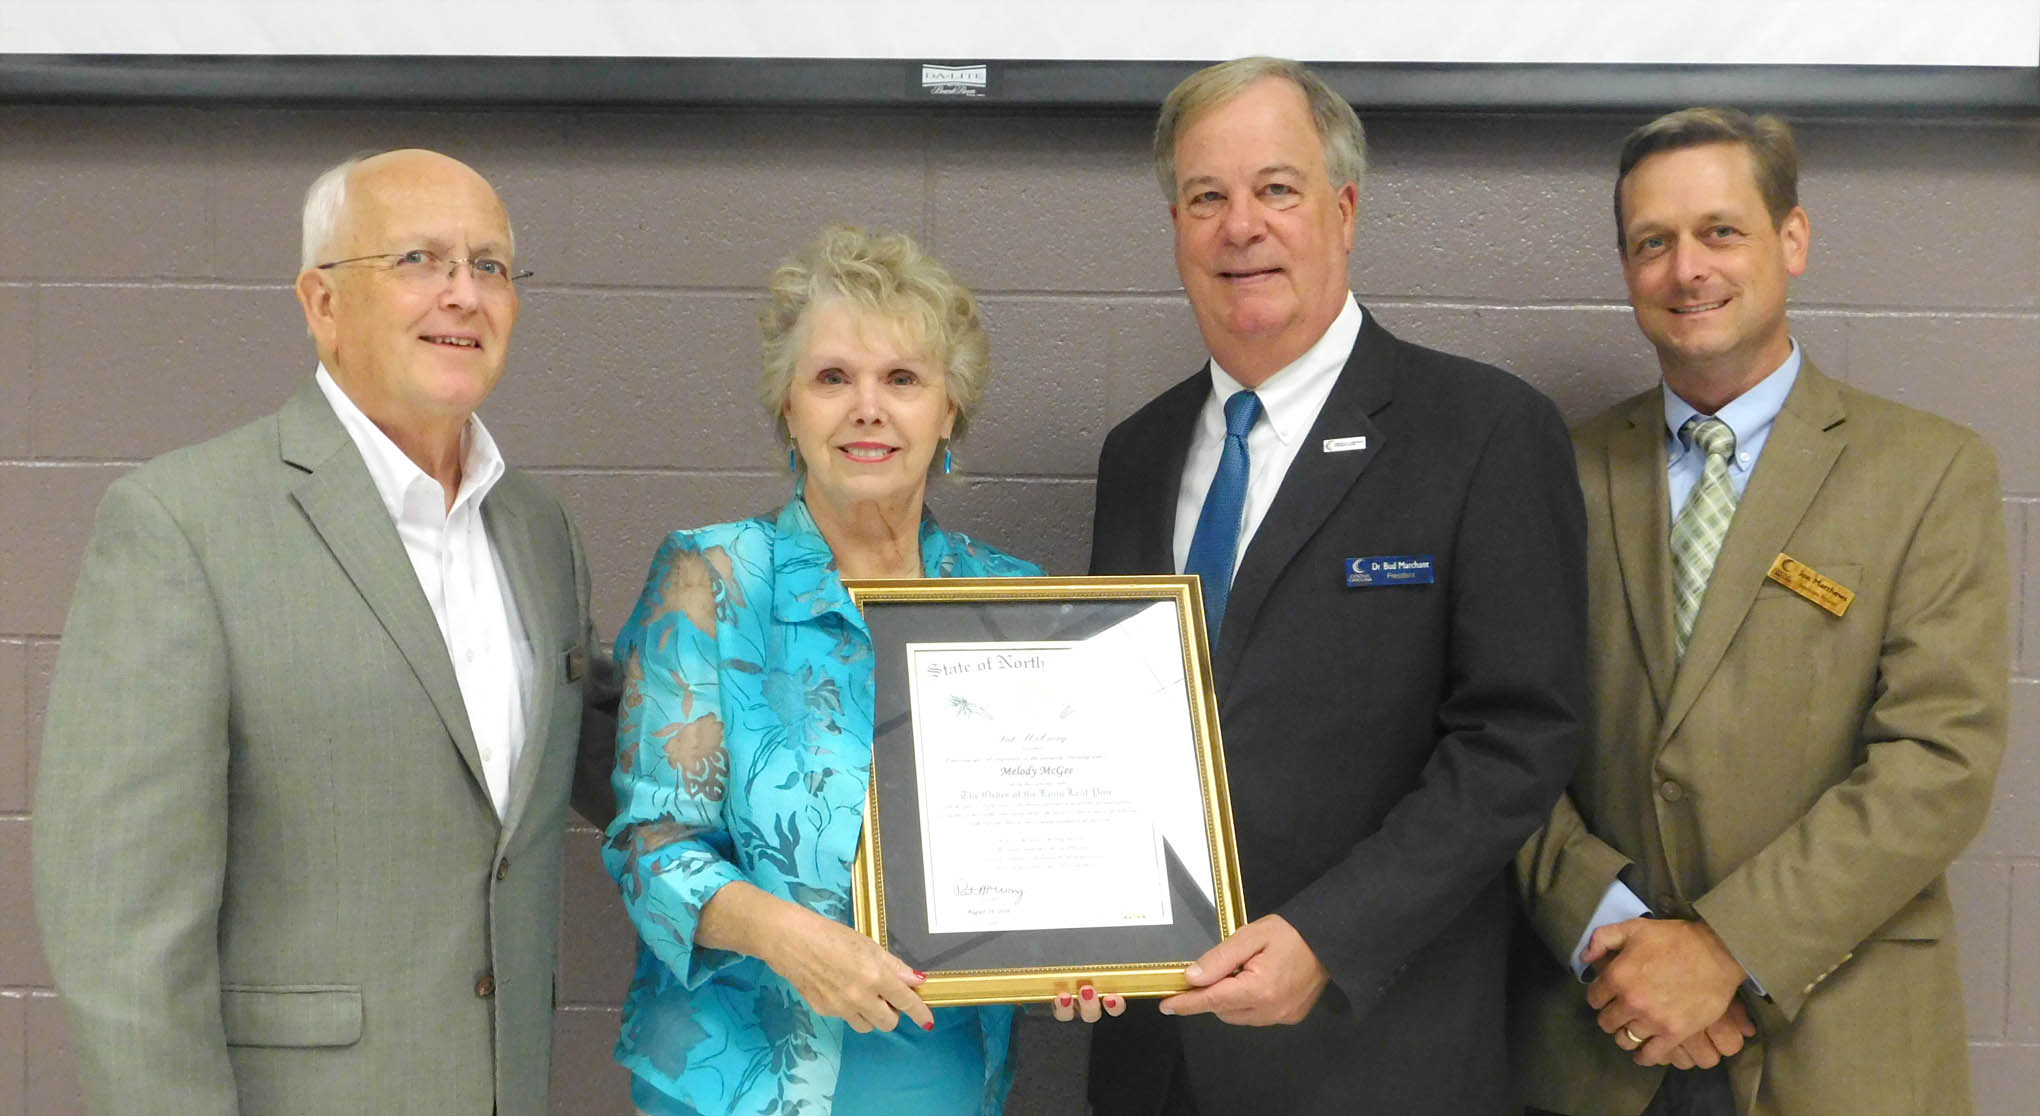 Read the full story, Retirement reception honors CCCC's Melody McGee